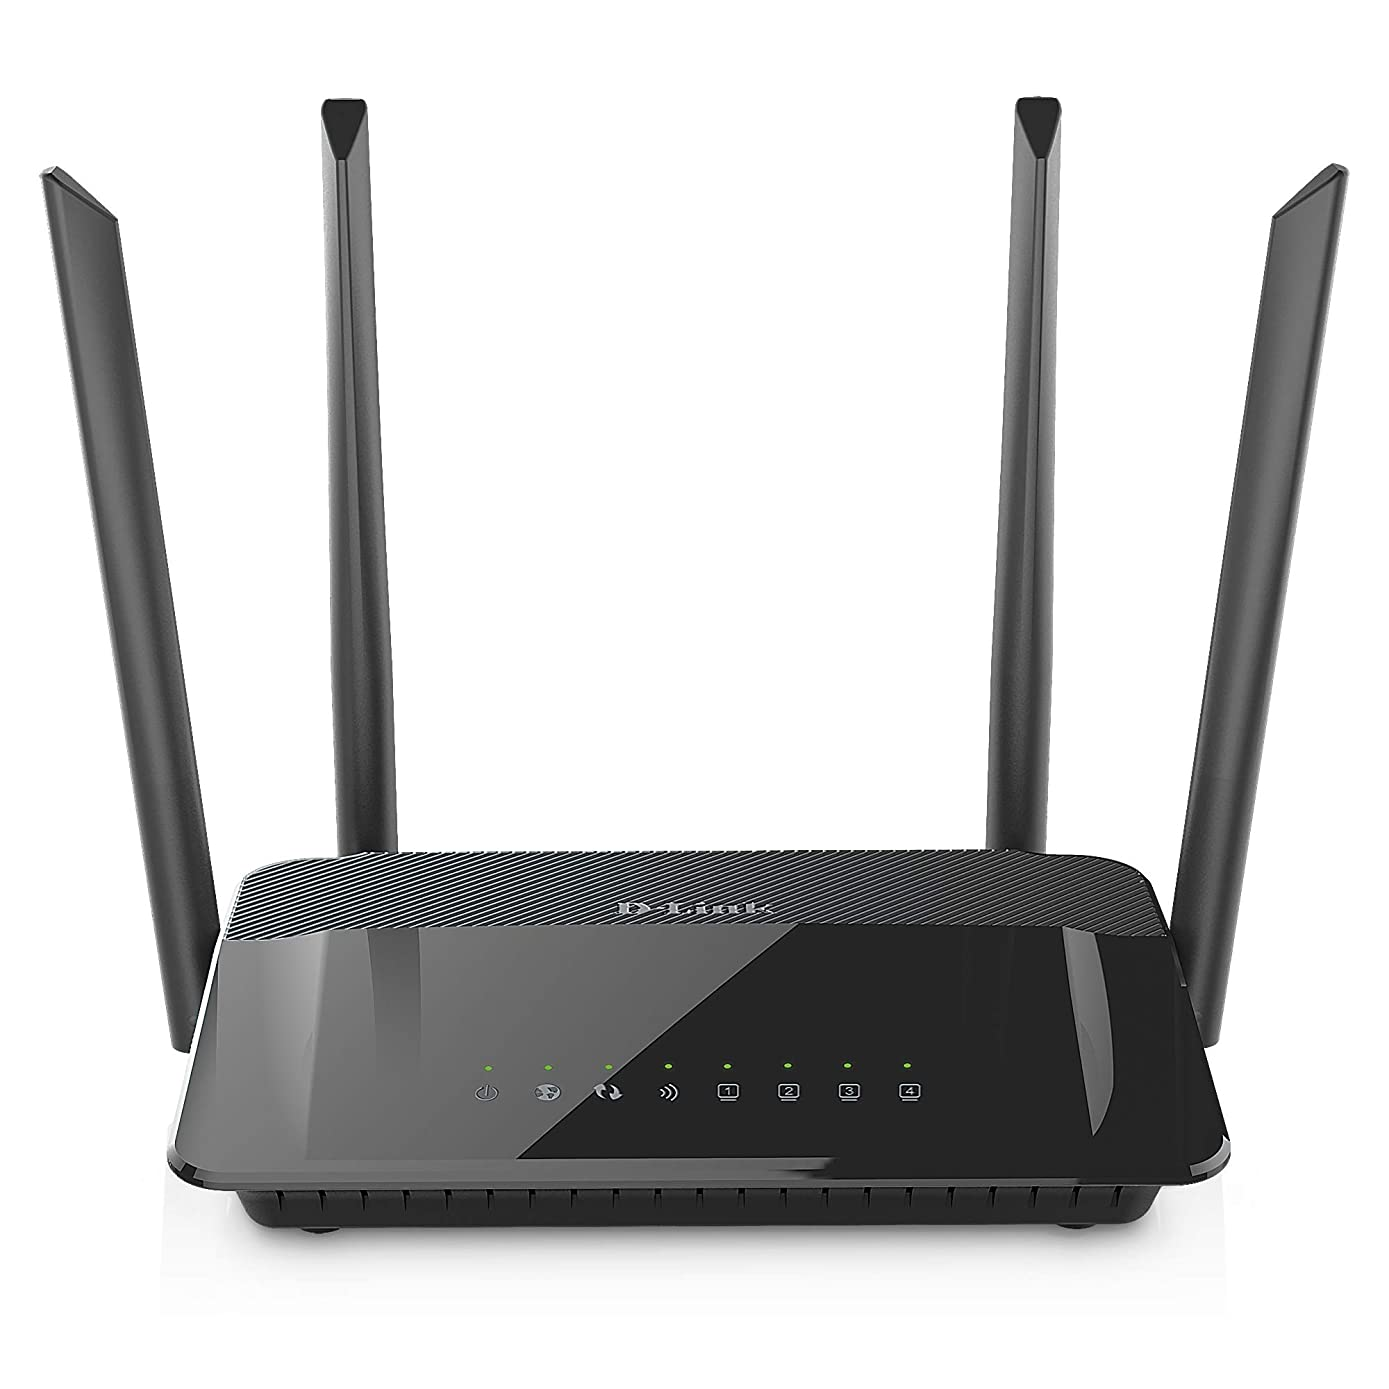 D-Link AC1200 Wireless WiFi Router – Smart Dual Band – Gigabit – MU-MIMO – High Power Antennas for Wide Coverage – Easy Setup – Parental Controls (DIR-842)